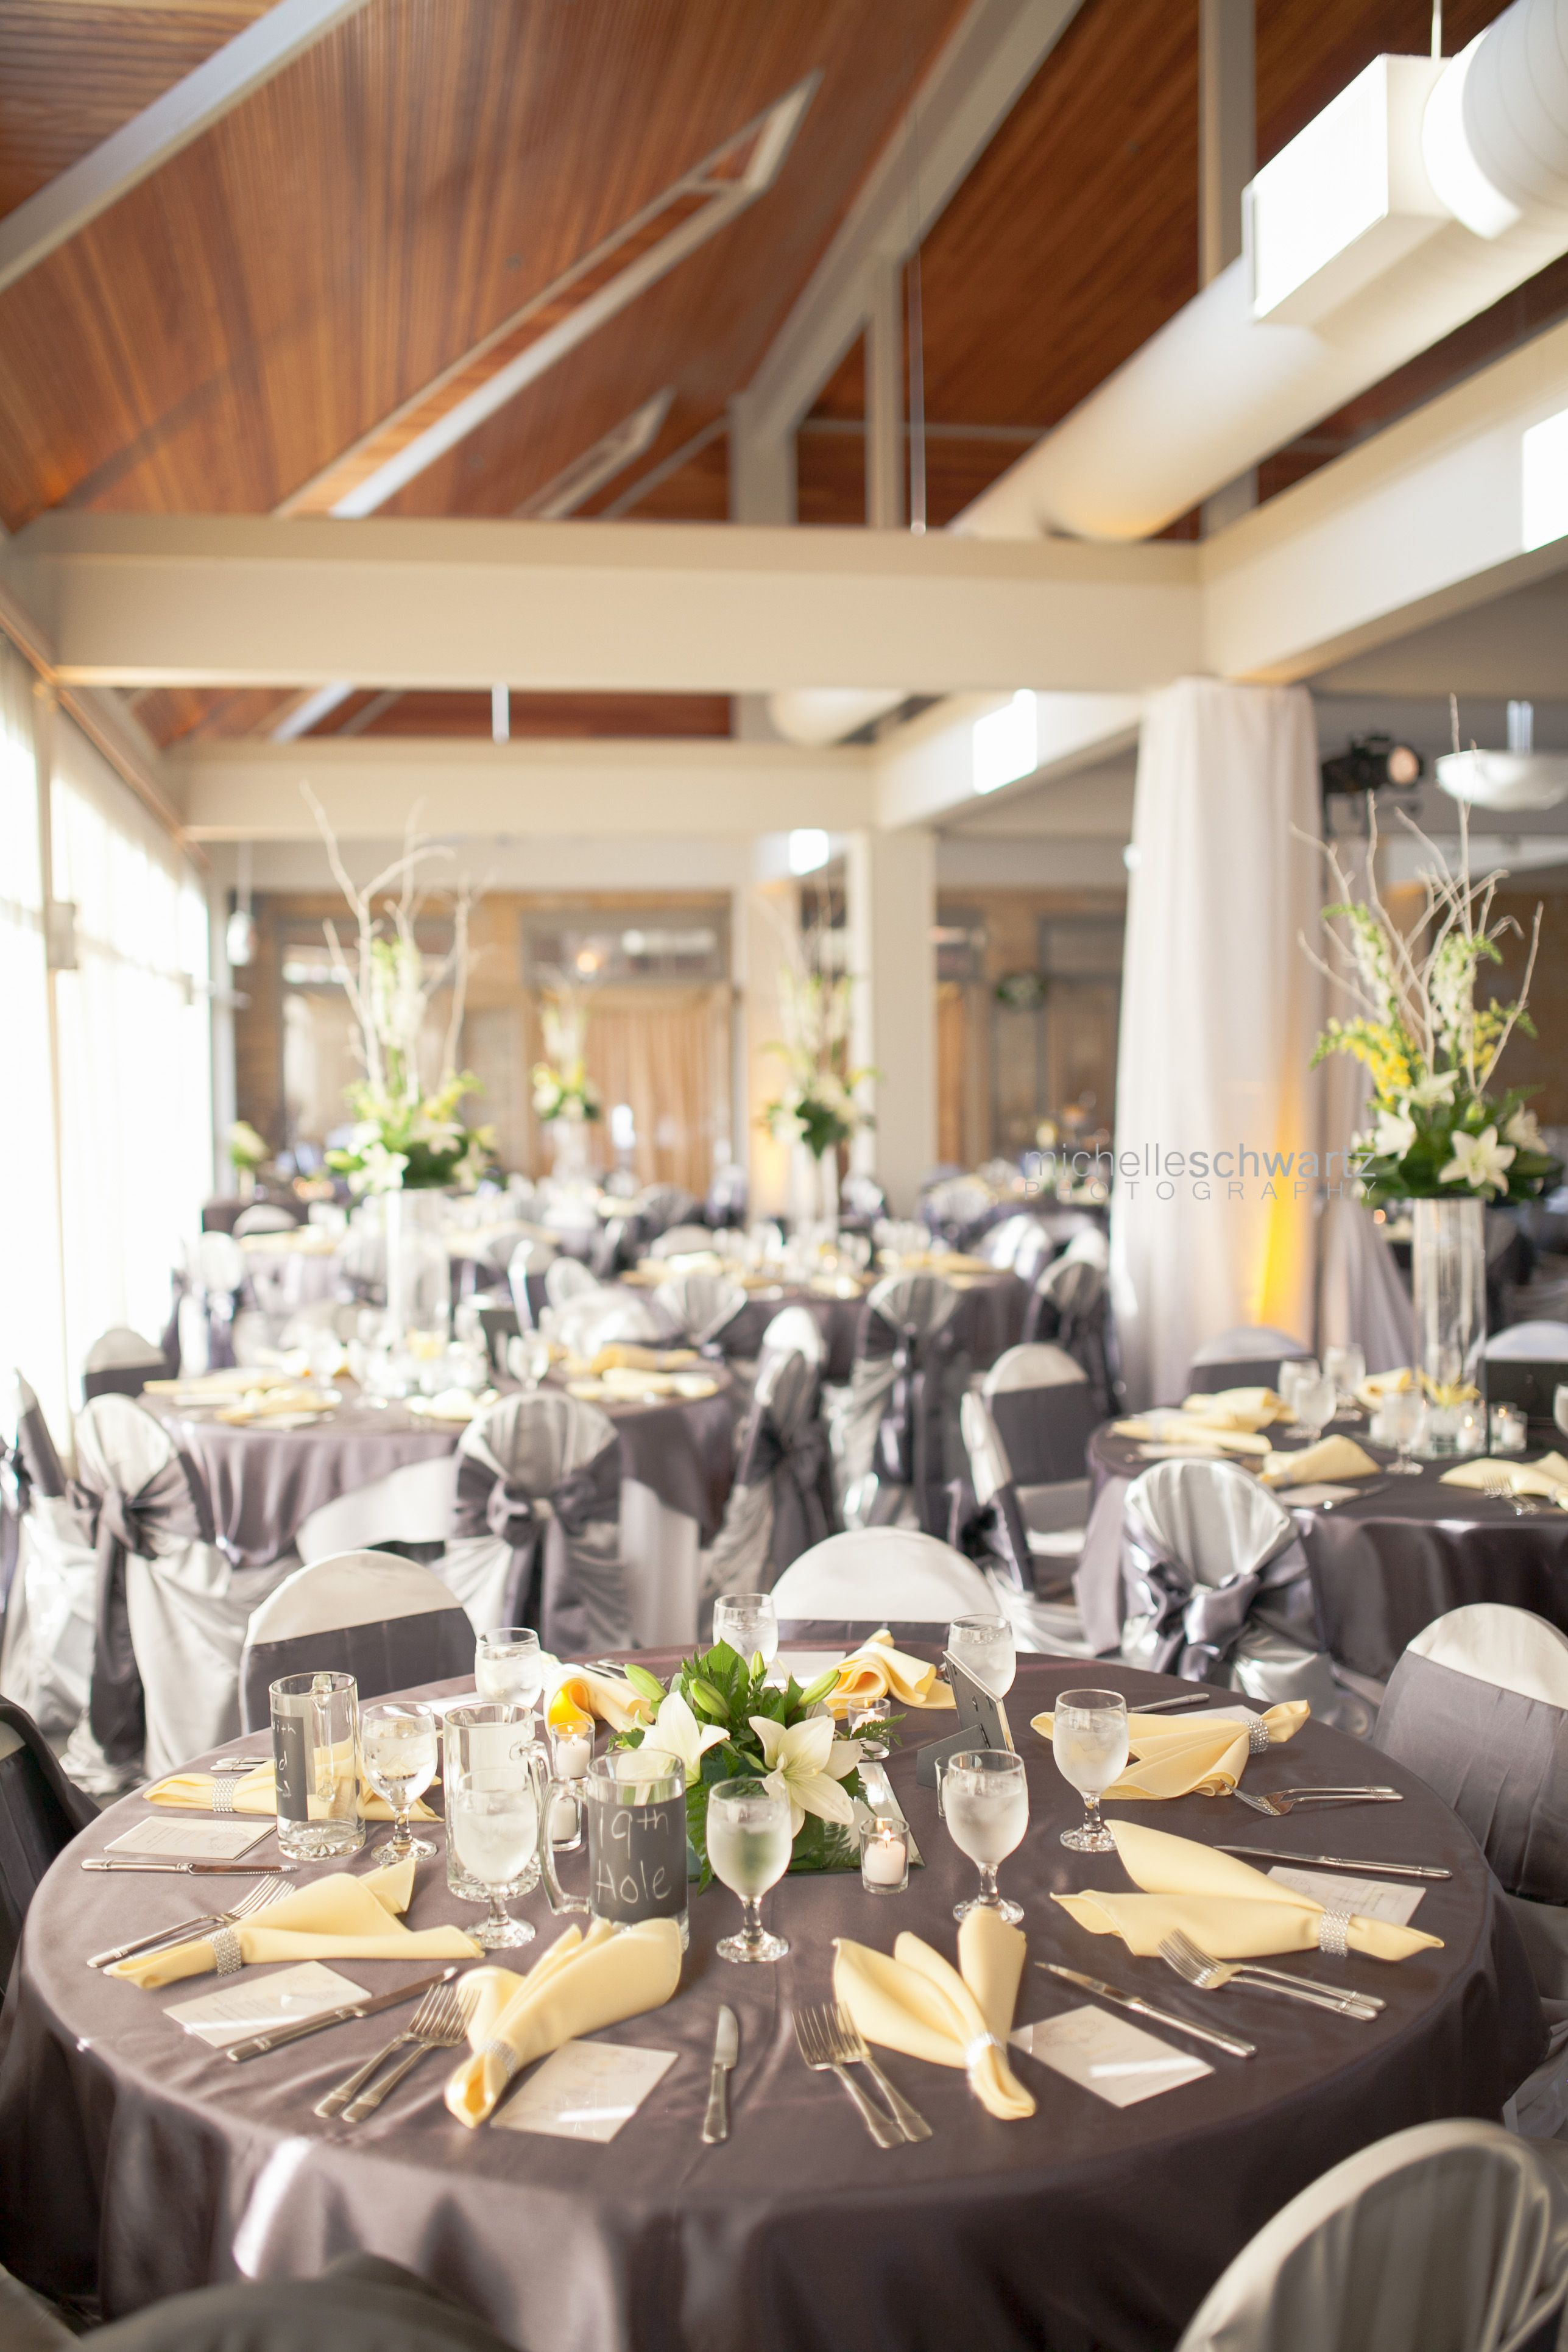 Wedding decorations yellow and gray  Yellow and Gray Wedding Table setting at Golf course club house  St